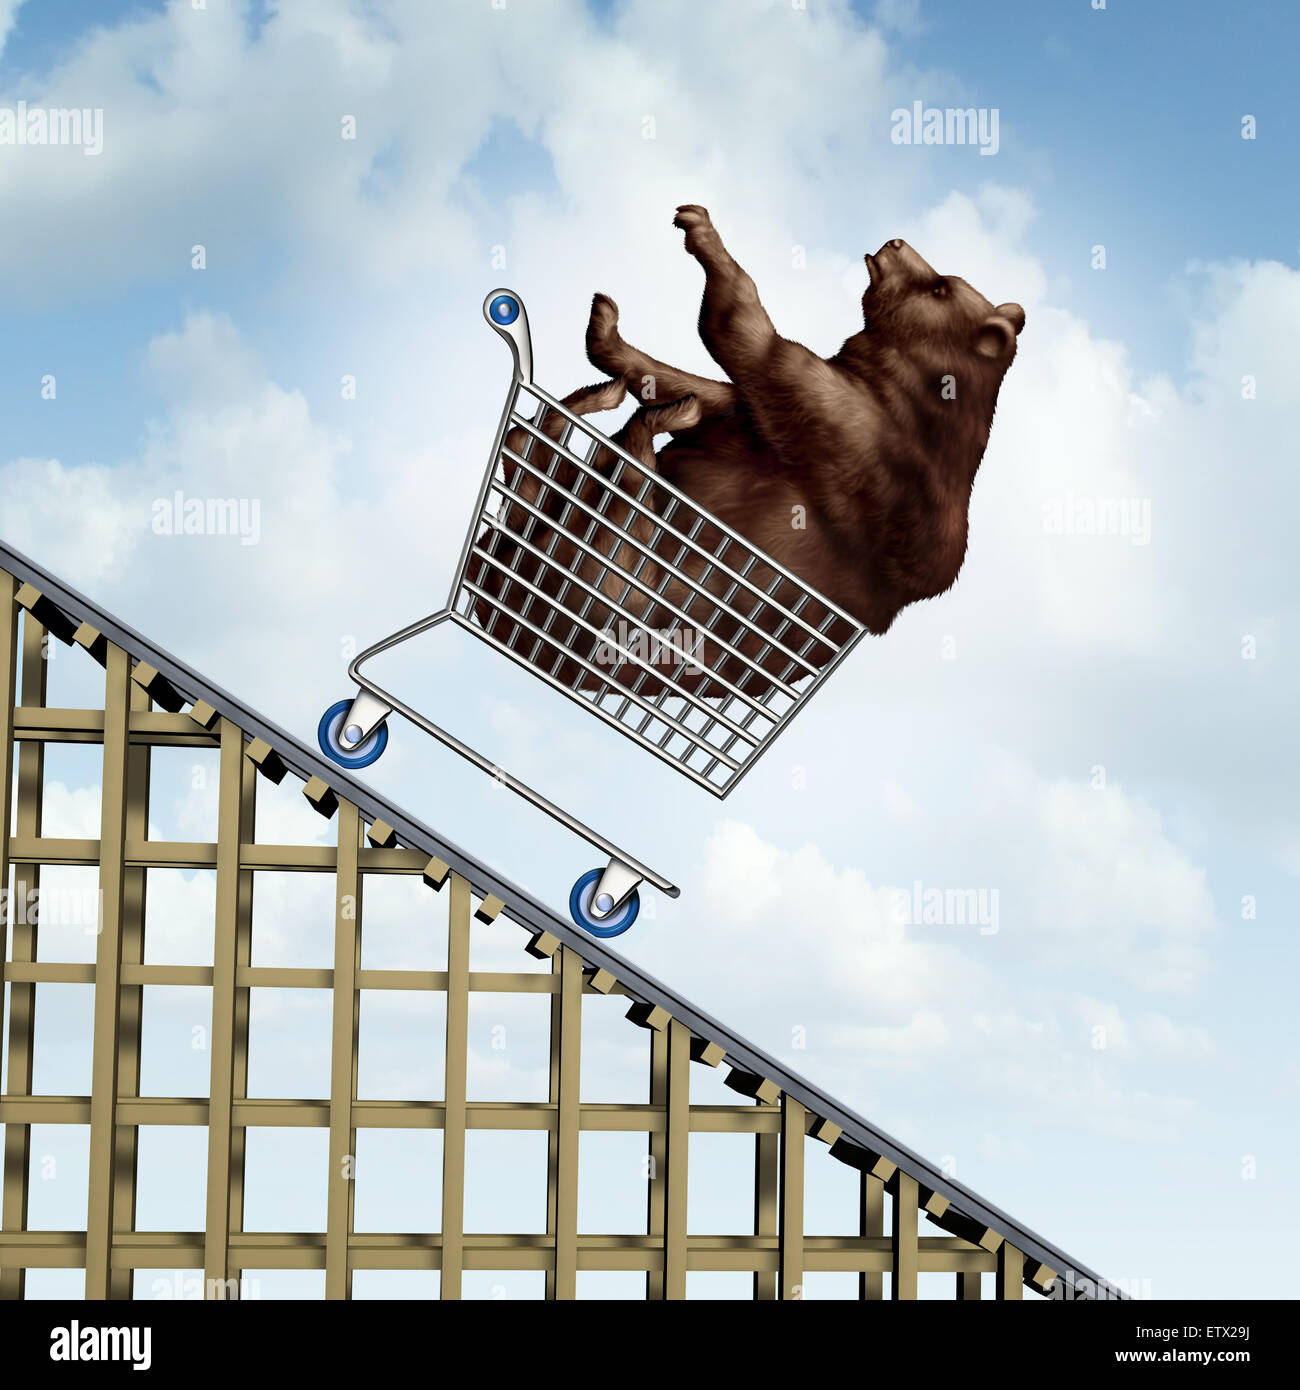 Stock market decline financial crisis concept as a bear in a shopping cart going down on a roller coaster structure - Stock Image